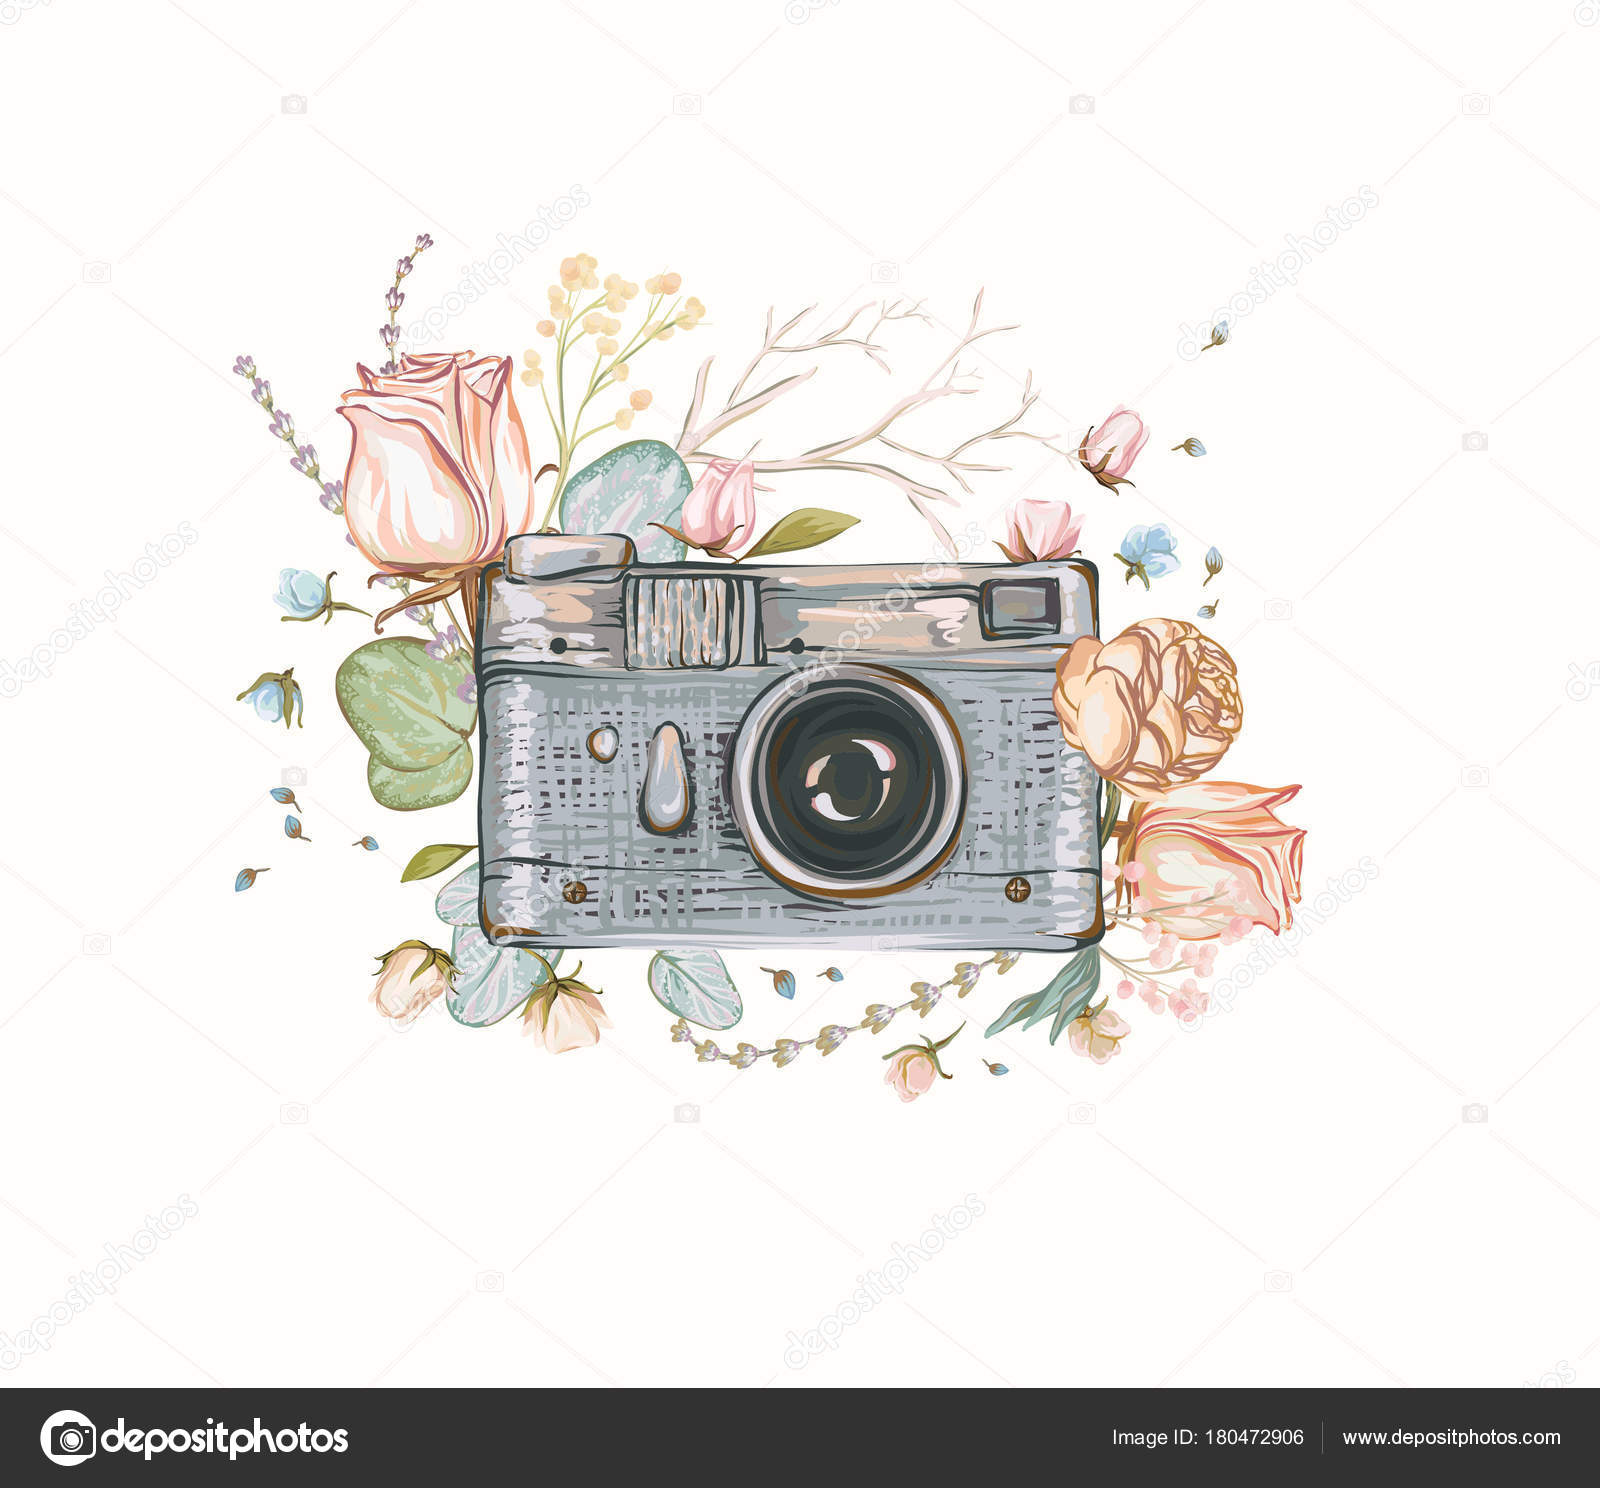 Vintage Retro Photo Camera Flowers Leaves Branches White